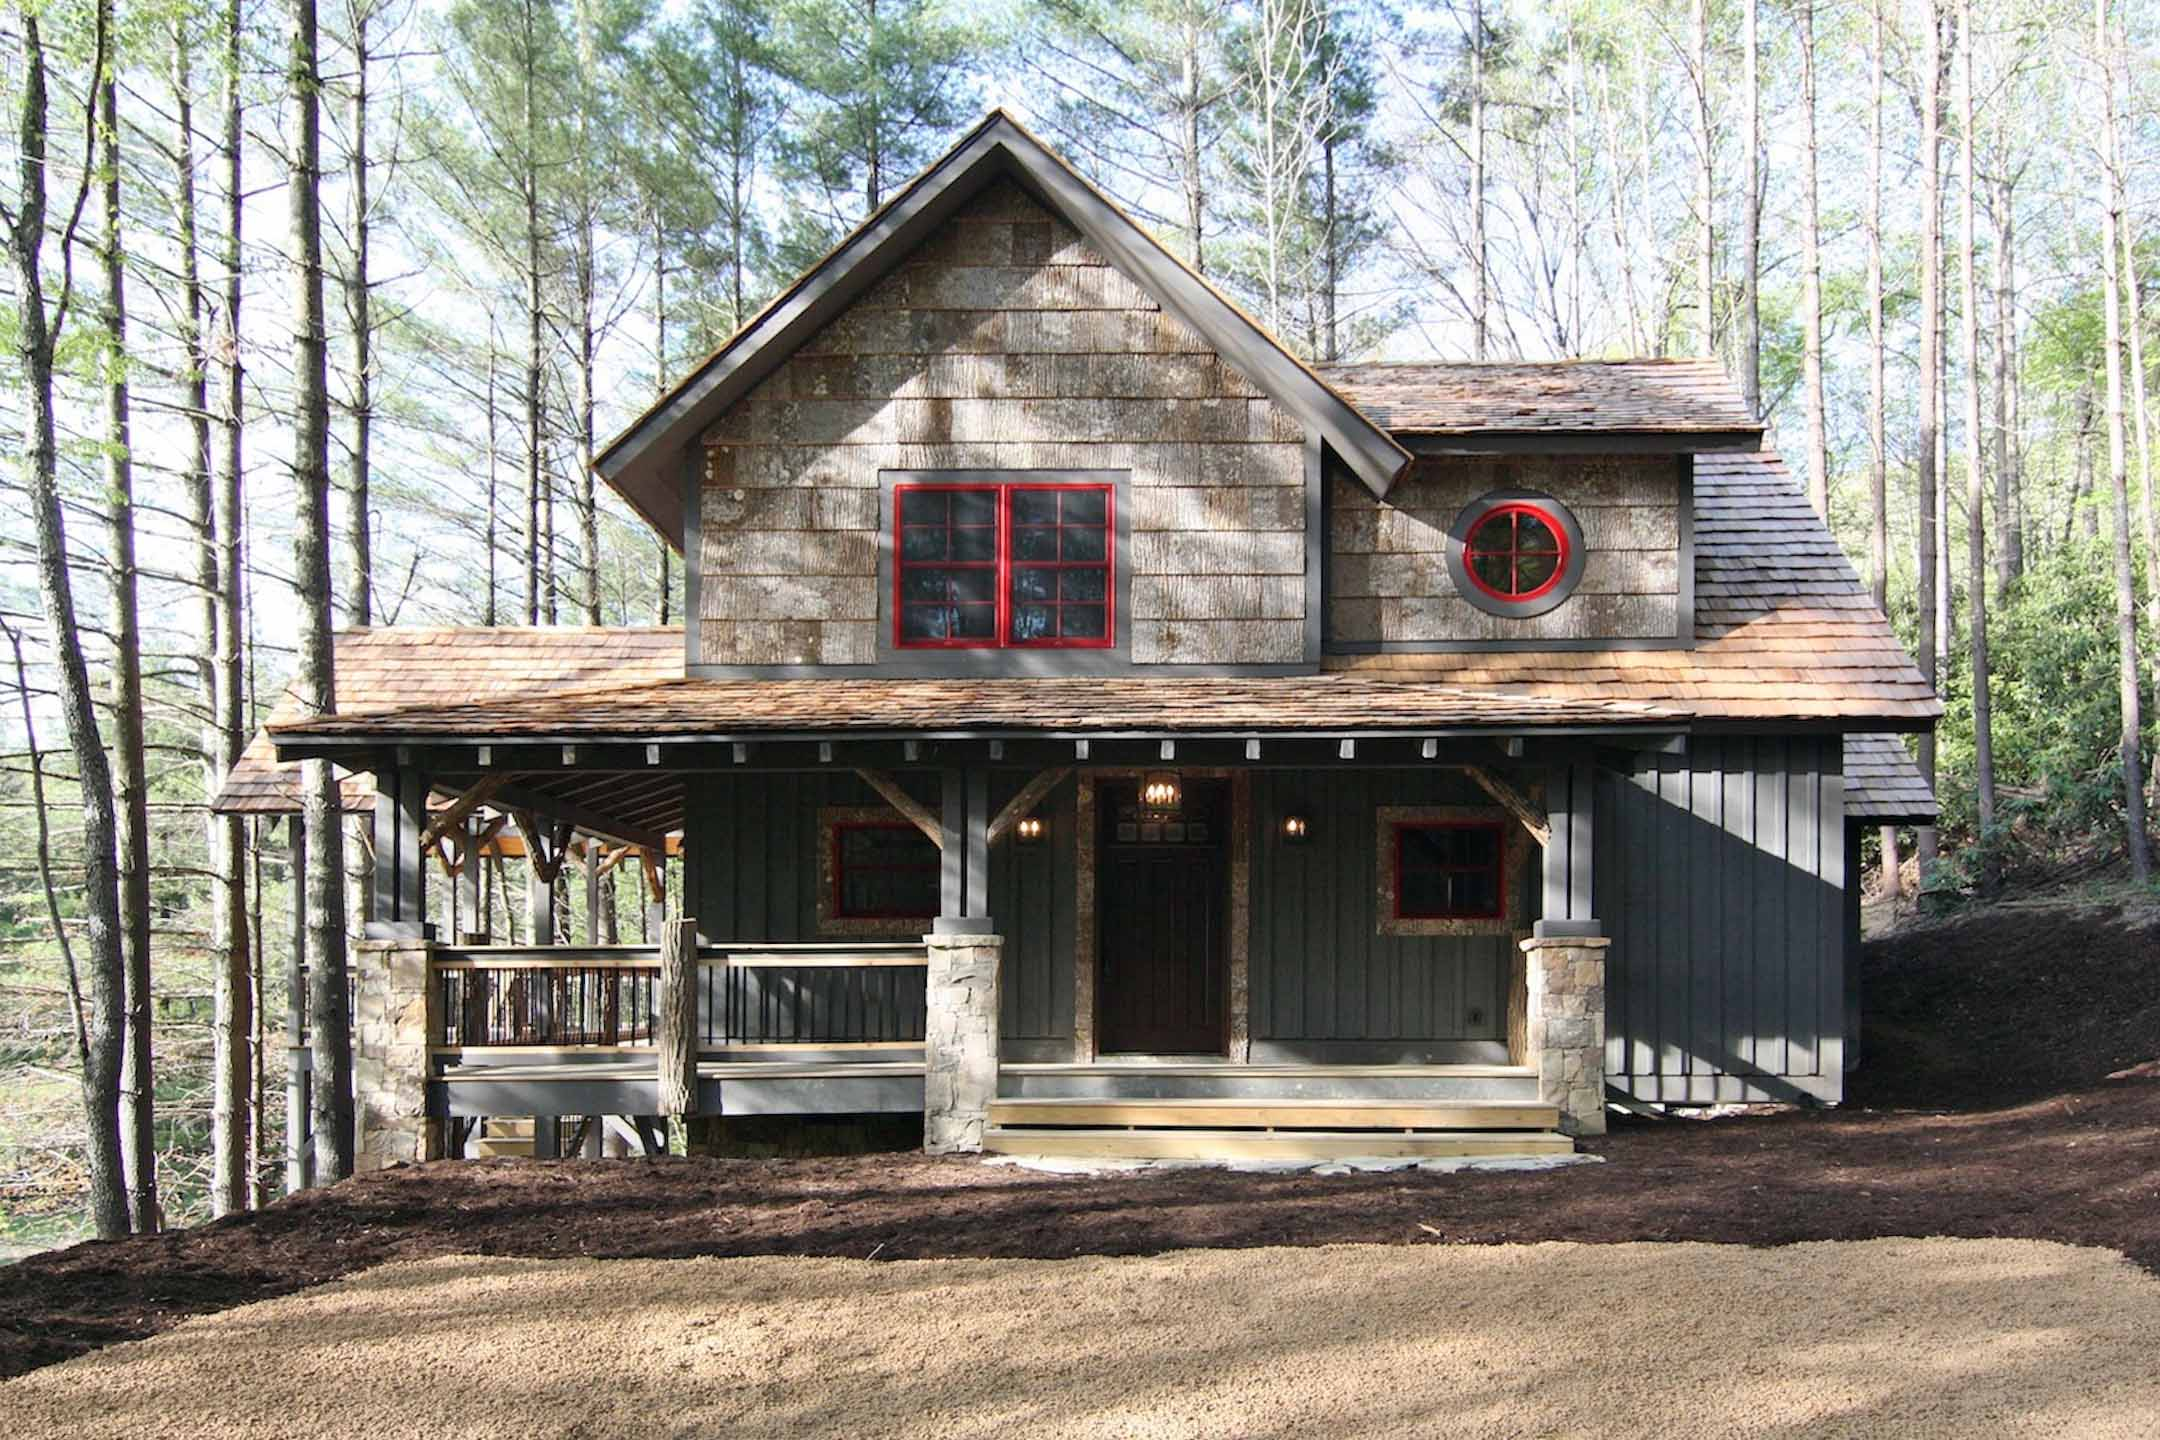 wrap around porch 18733ck architectural designs house plansSmall Mountain Home Floor Plans Apartments Best Small Cabin Plans Ideas On Home Mountain House Plan Ck Wrap Around Small Mountain Cabin Floor Plans.jpg #15